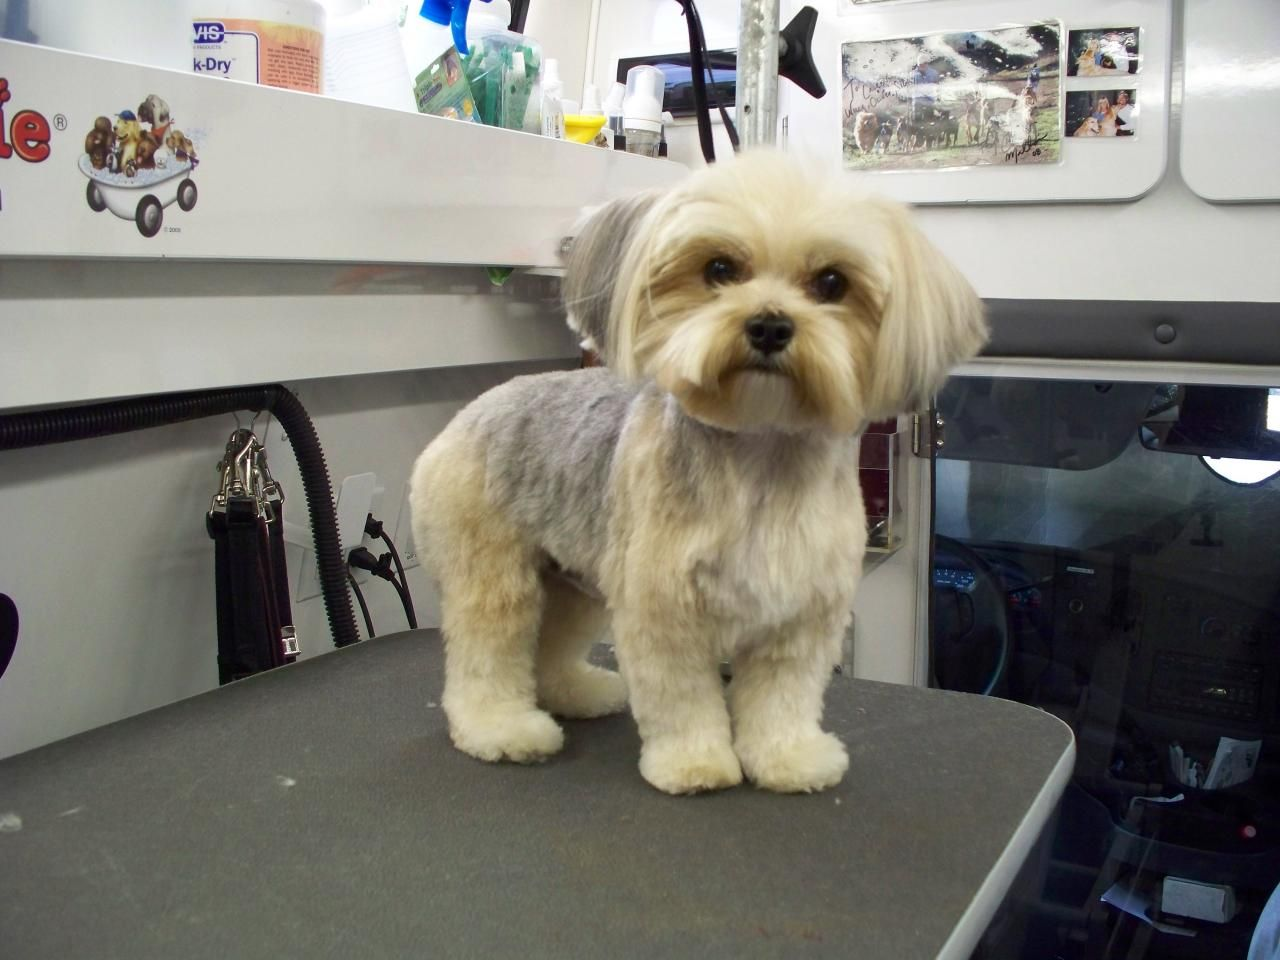 Yorkie hairstyles short hairstyle haircuts - Yorkie After Grooming